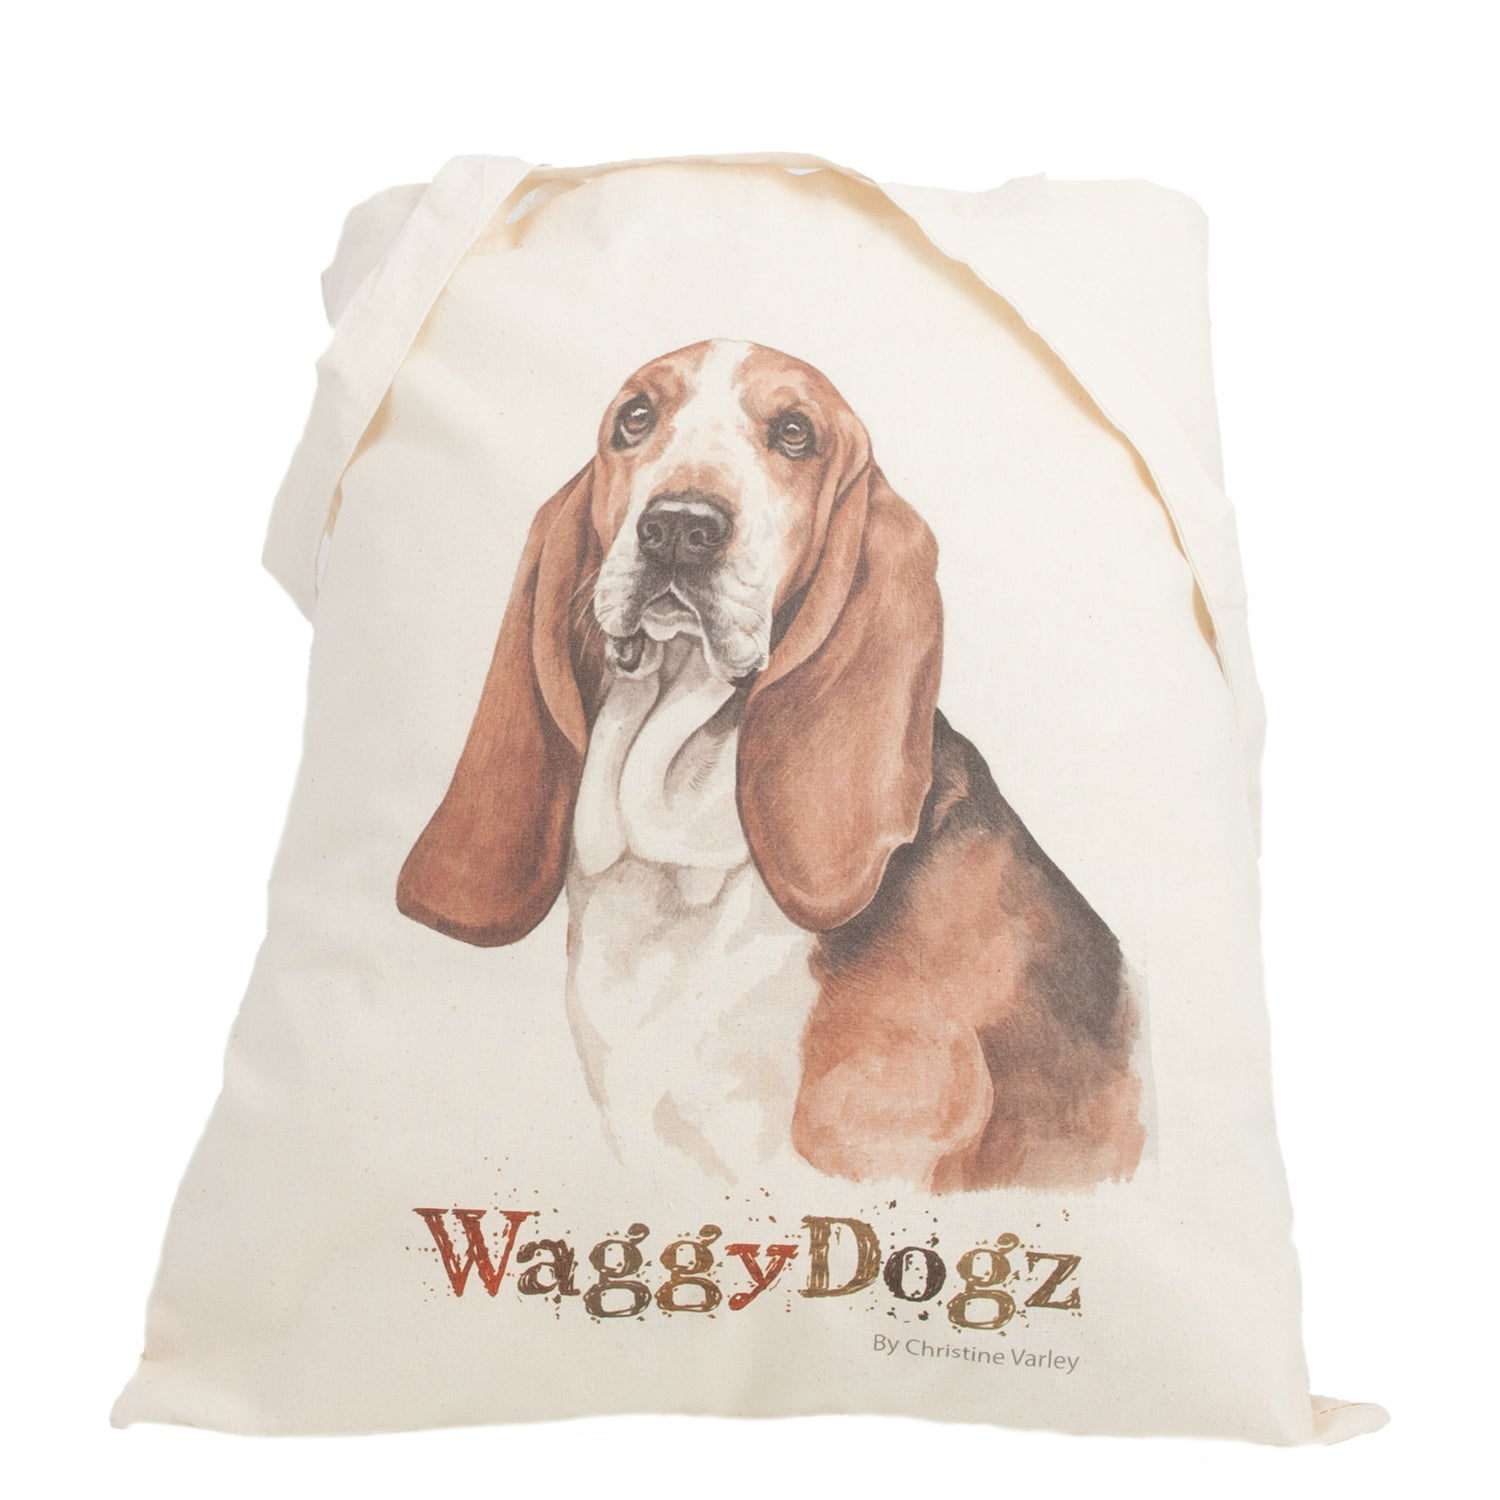 Dog Lover Gifts available at Dog Krazy Gifts. Basset Hound Tote Bag, part of our Christine Varley collection – available at www.dogkrazygifts.co.uk